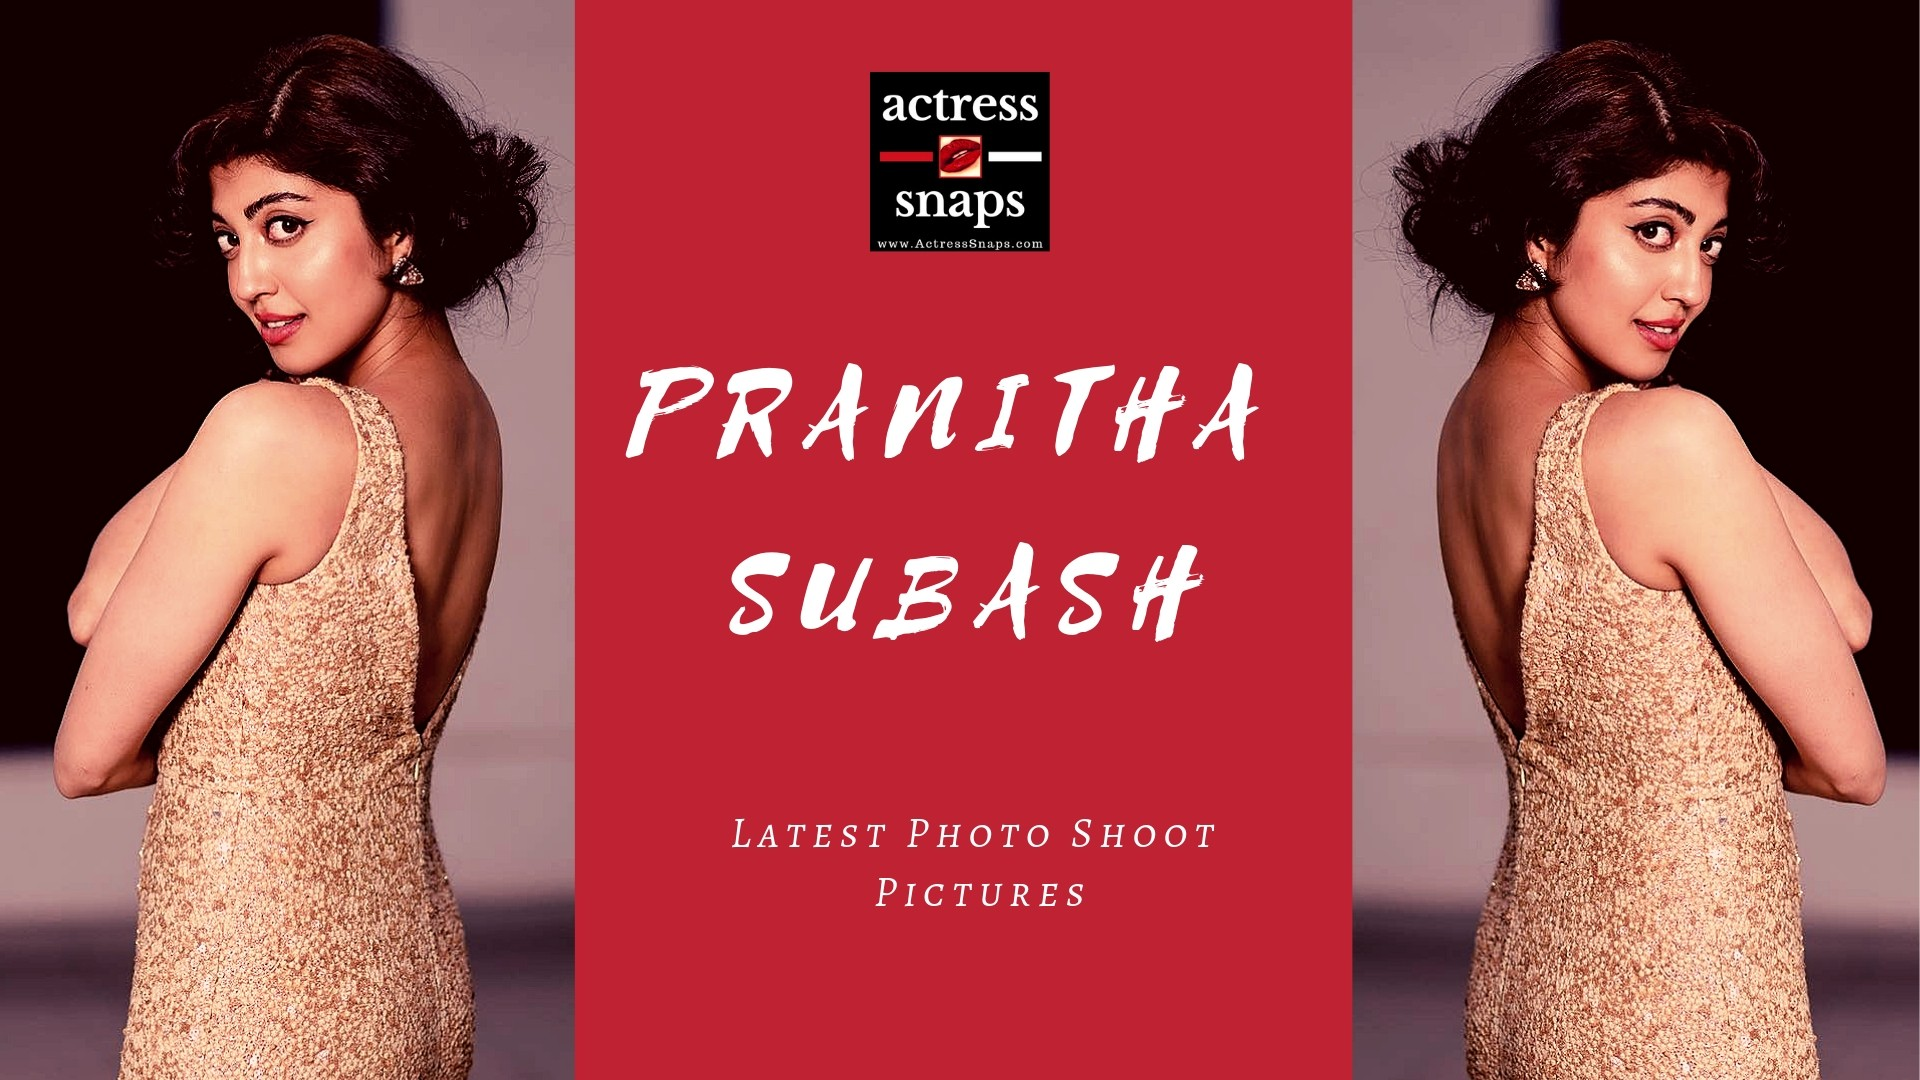 Sexy Pranitha Subhash Photo Shoot - Sexy Actress Pictures | Hot Actress Pictures - ActressSnaps.com #ActressSnaps #Pranitha #KannadaActress